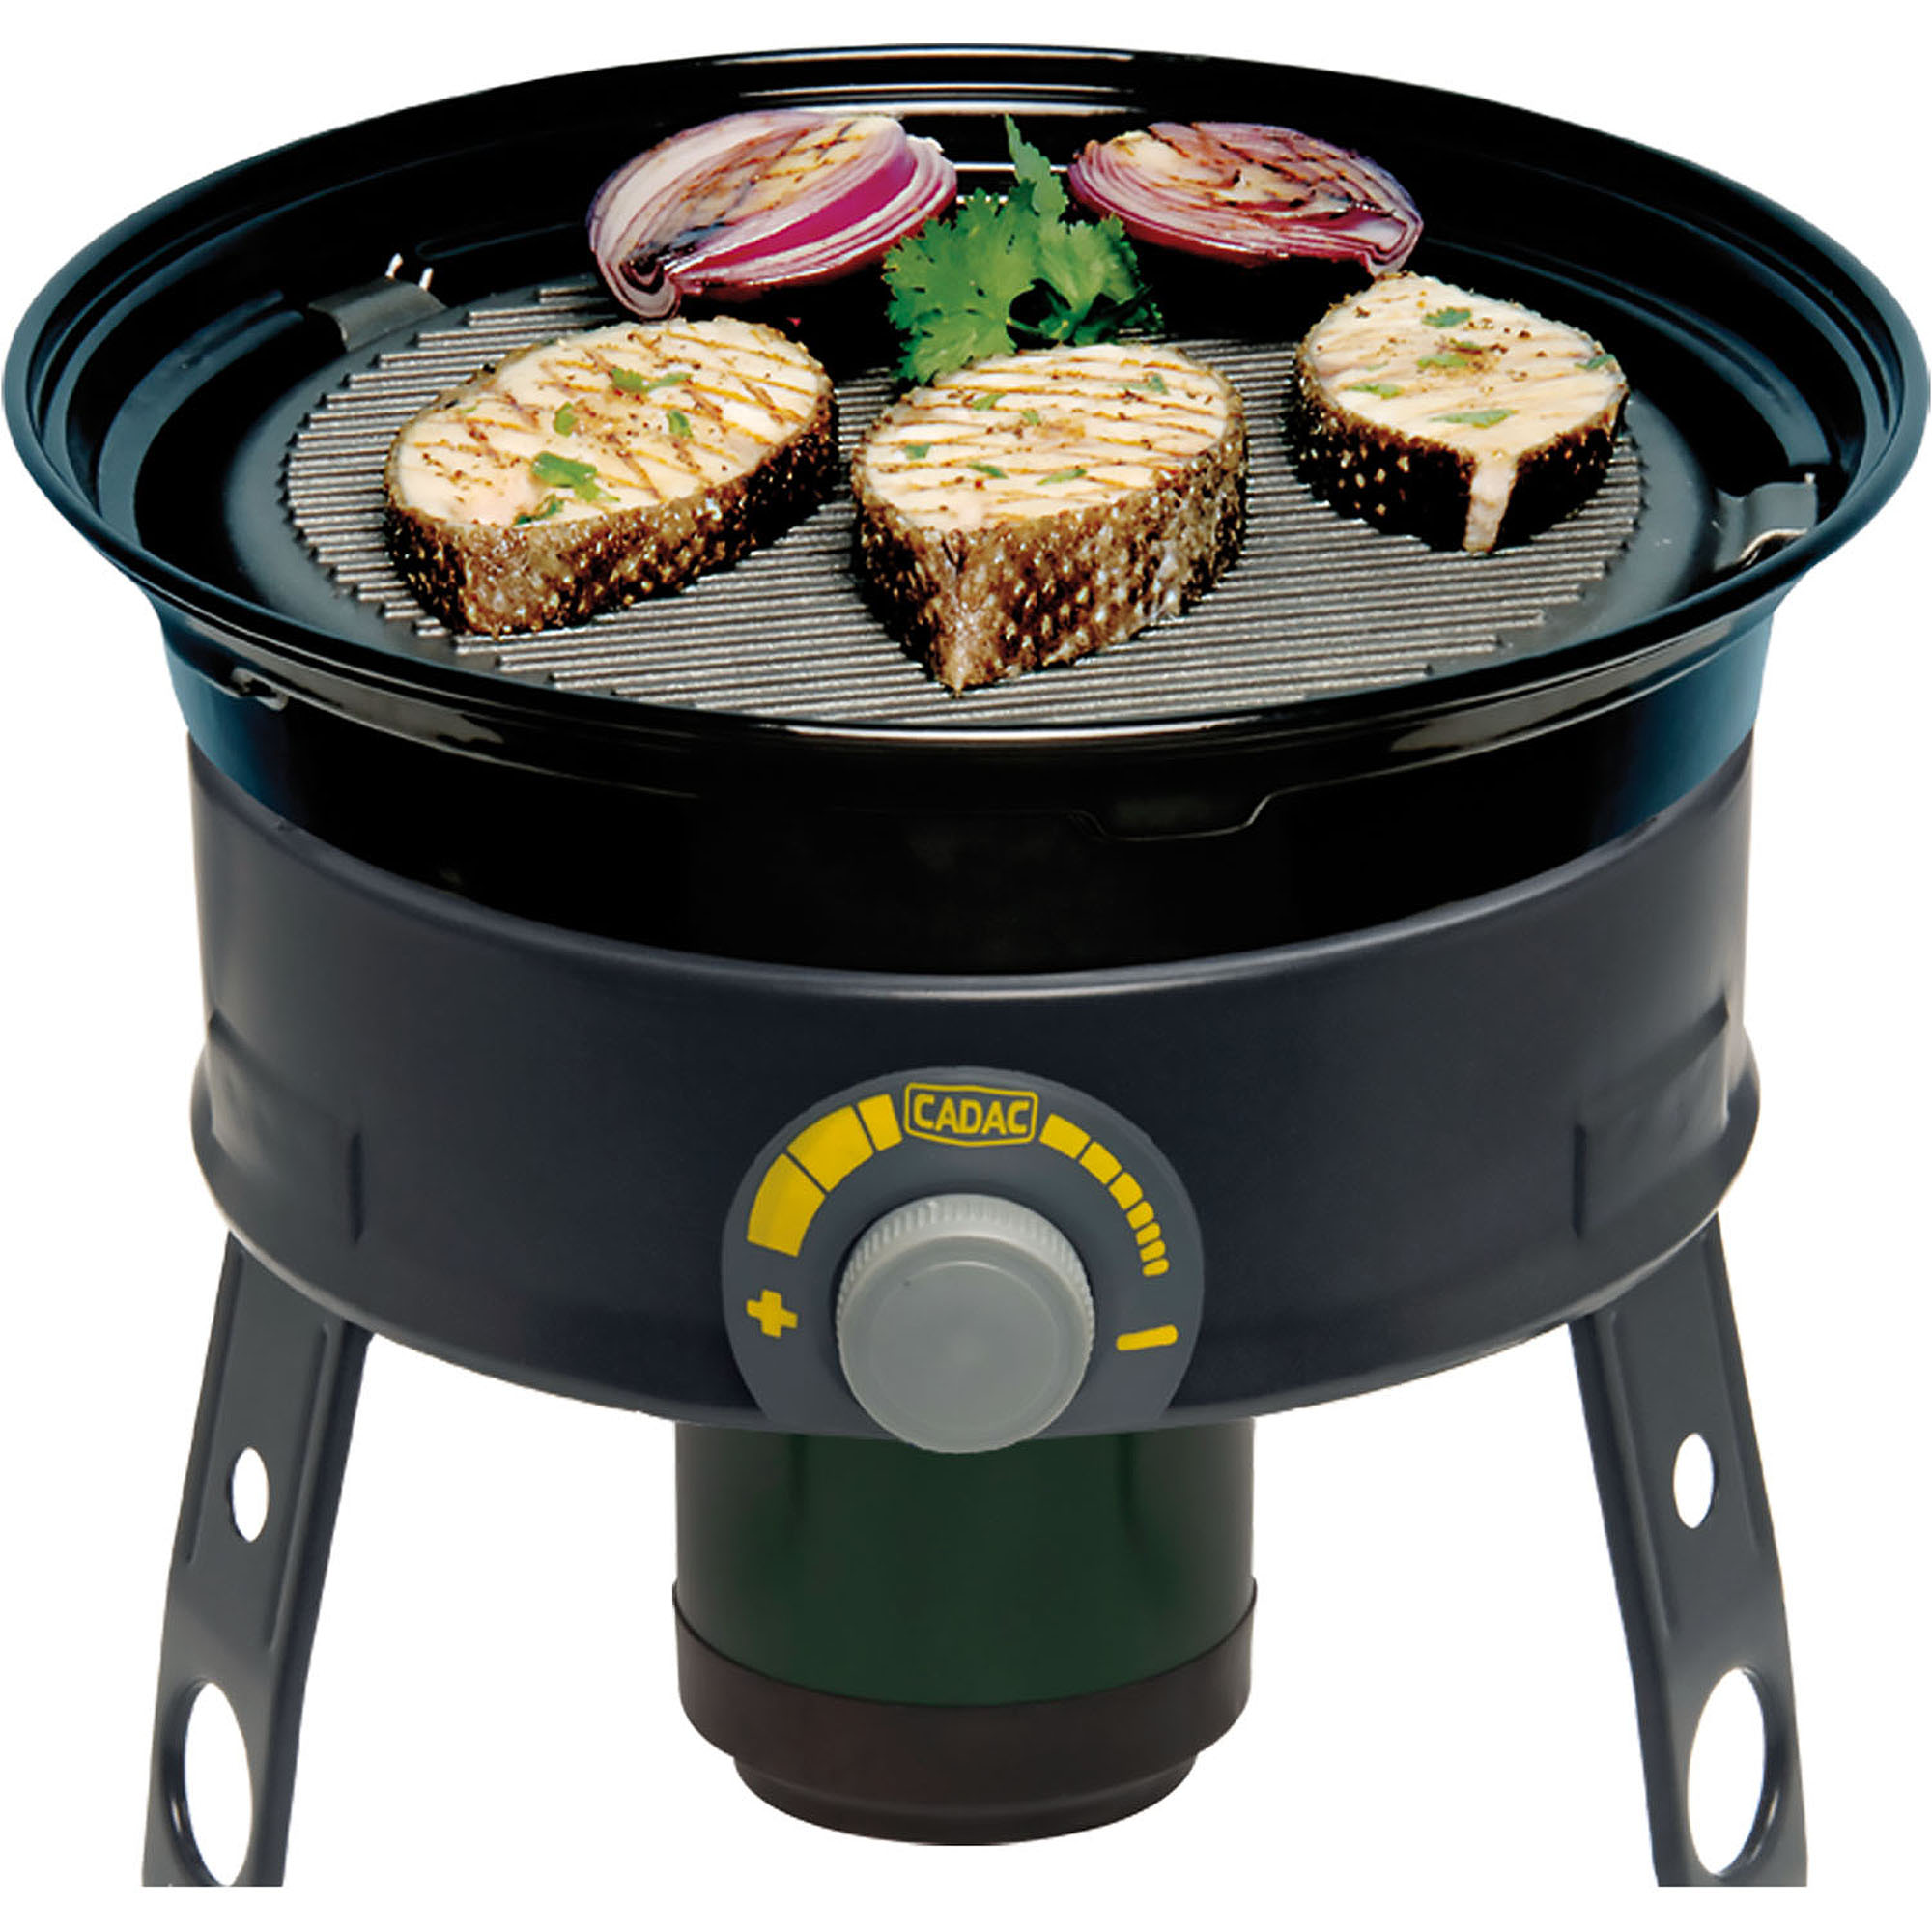 Cadac Safari Chef Outdoor Gas Grill